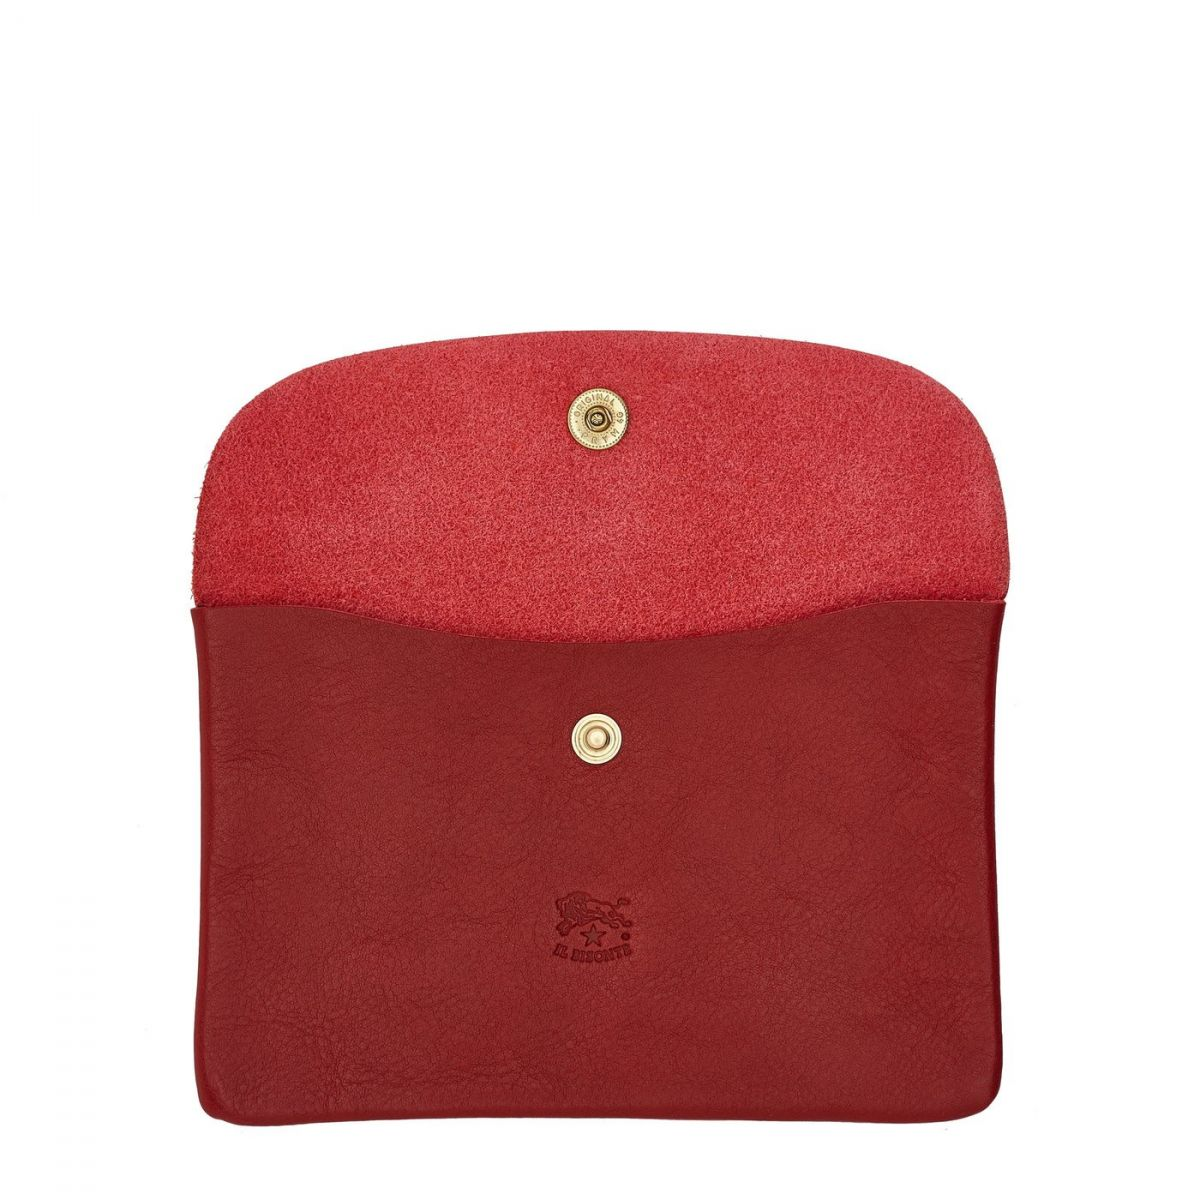 Case  in Cowhide Double Leather SCA007 color Red | Details